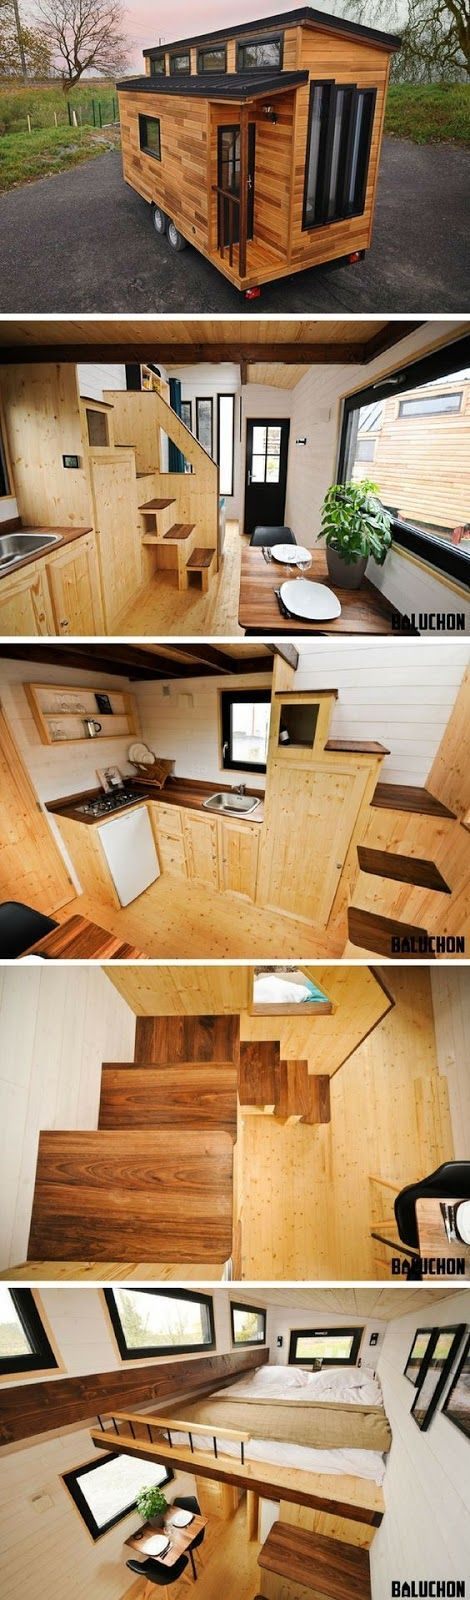 mytinyhousedirectory: The Escapade By Baluchon ~ Fabulous!